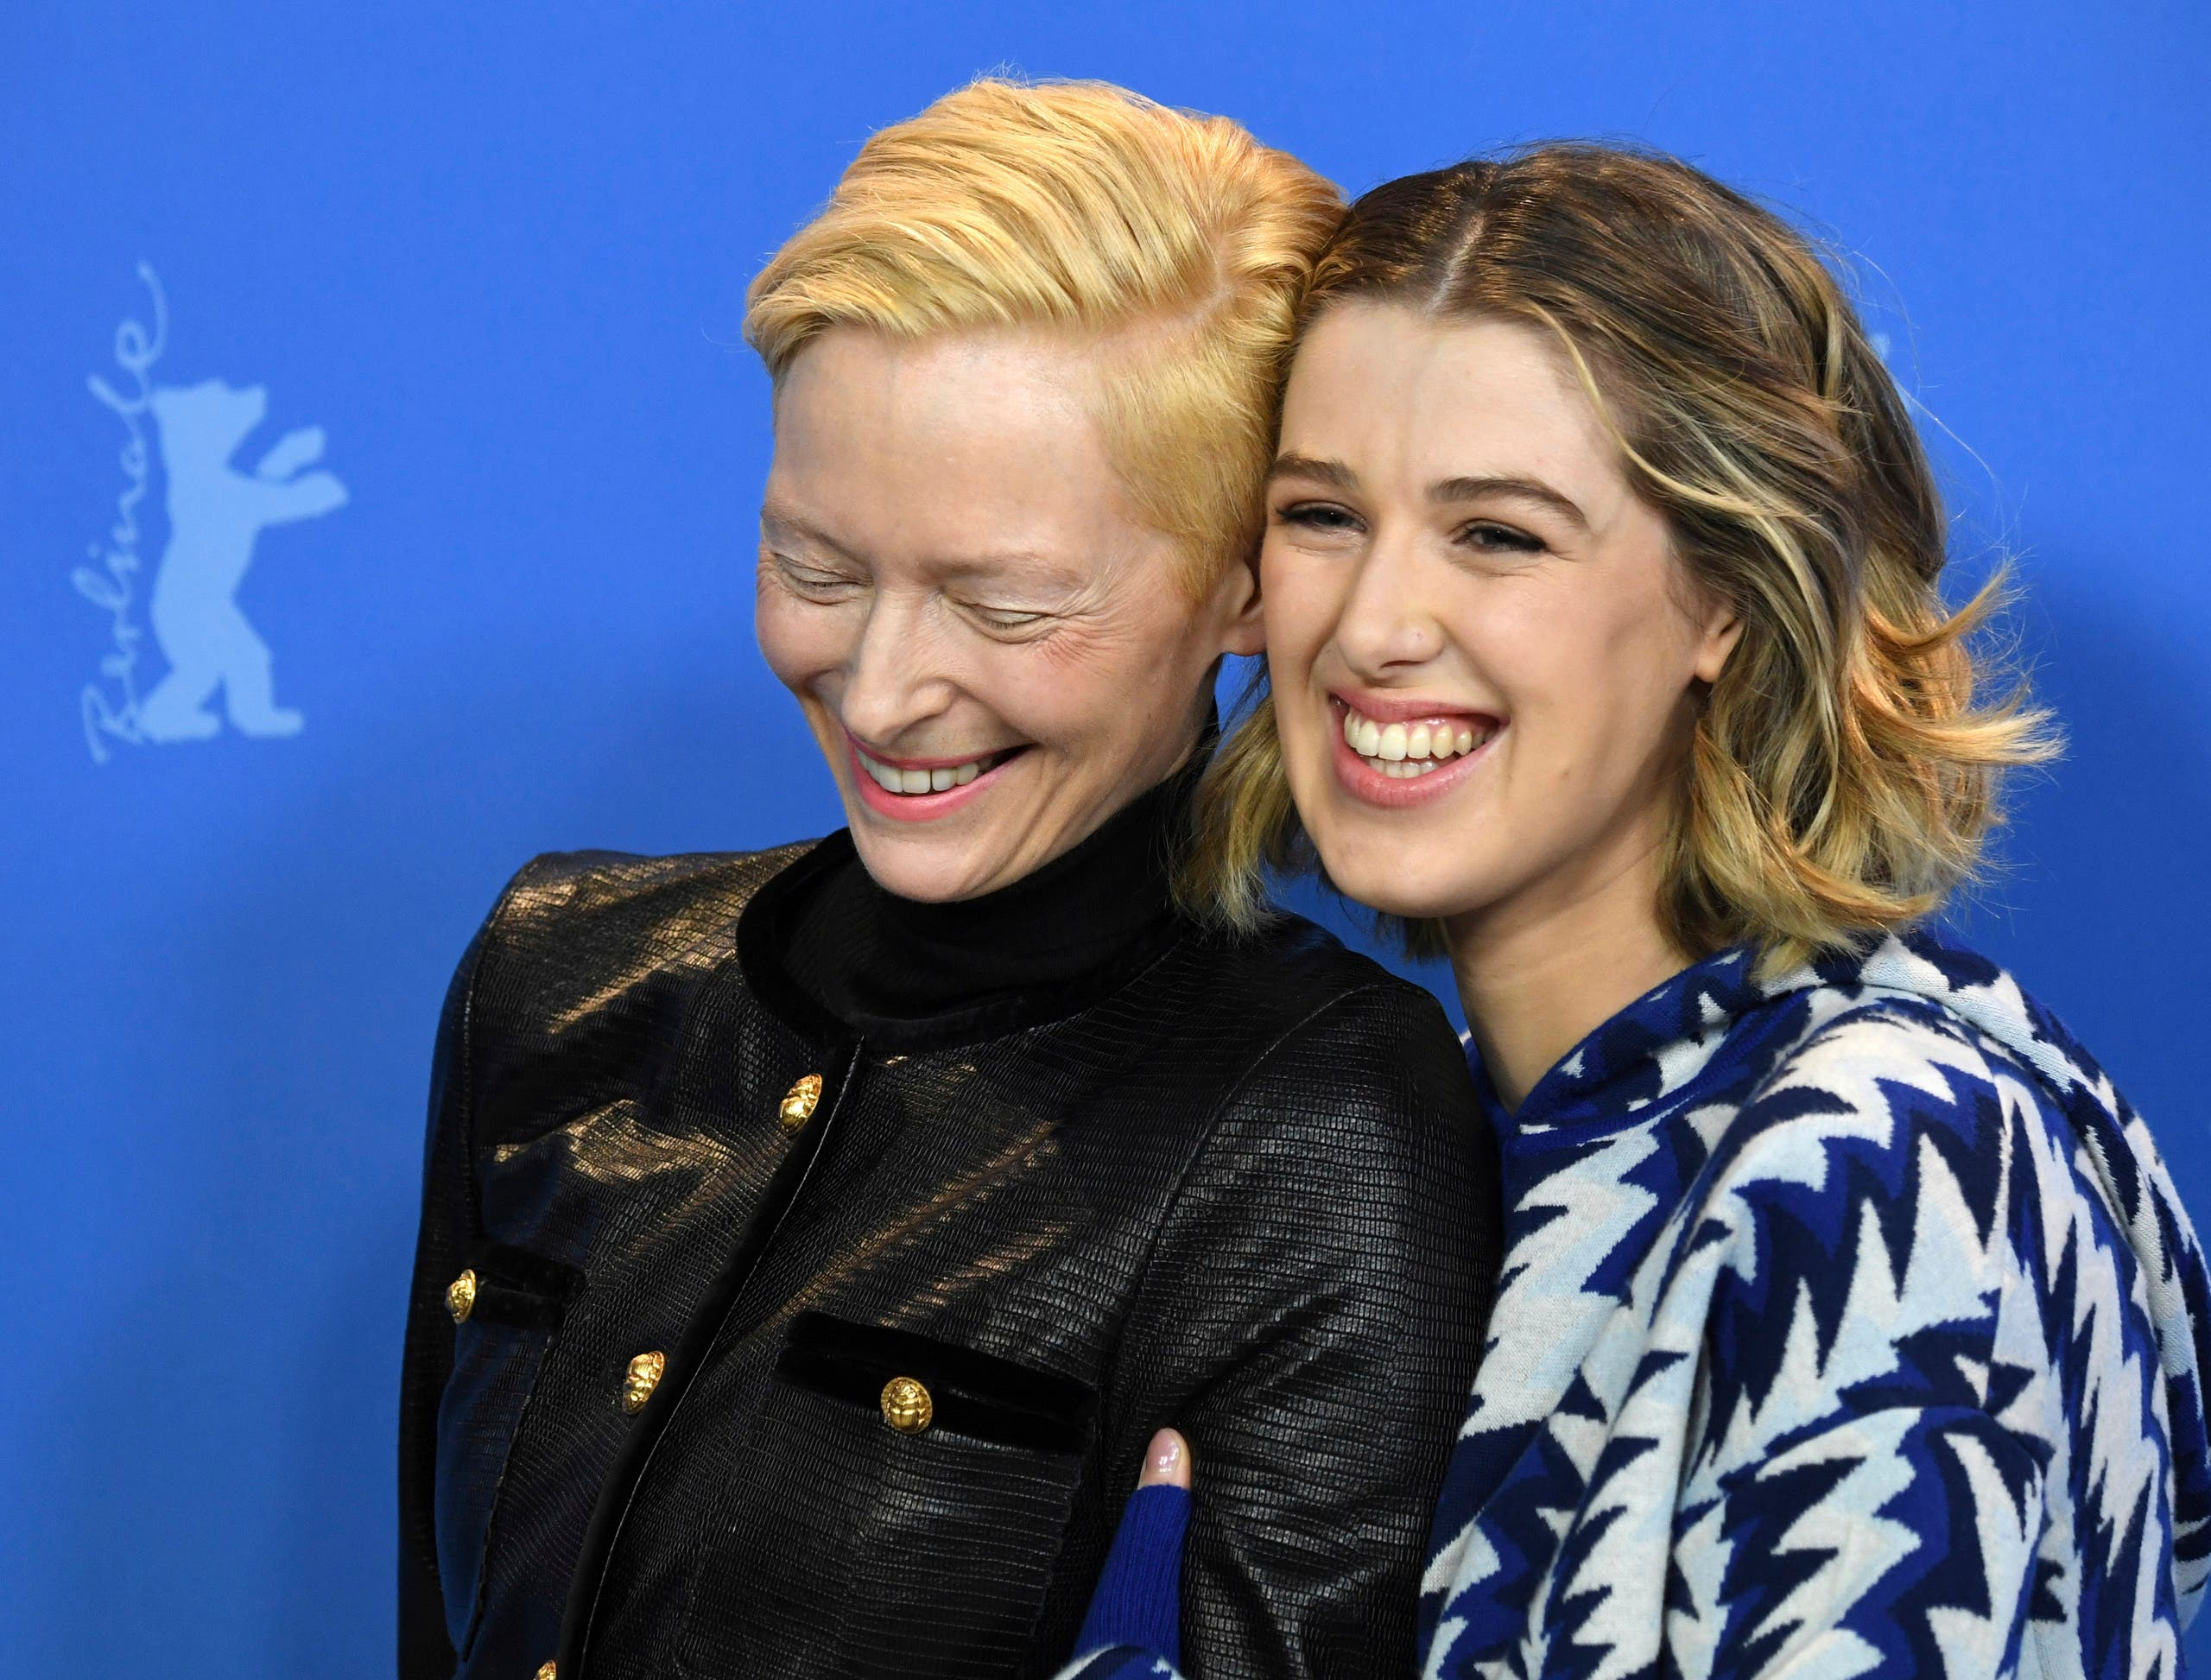 Actress Tilda Swinton, left, and actress Honor Swinton Byrne, right, at the 2019 Berlinale Film Festival in Berlin. (AP)